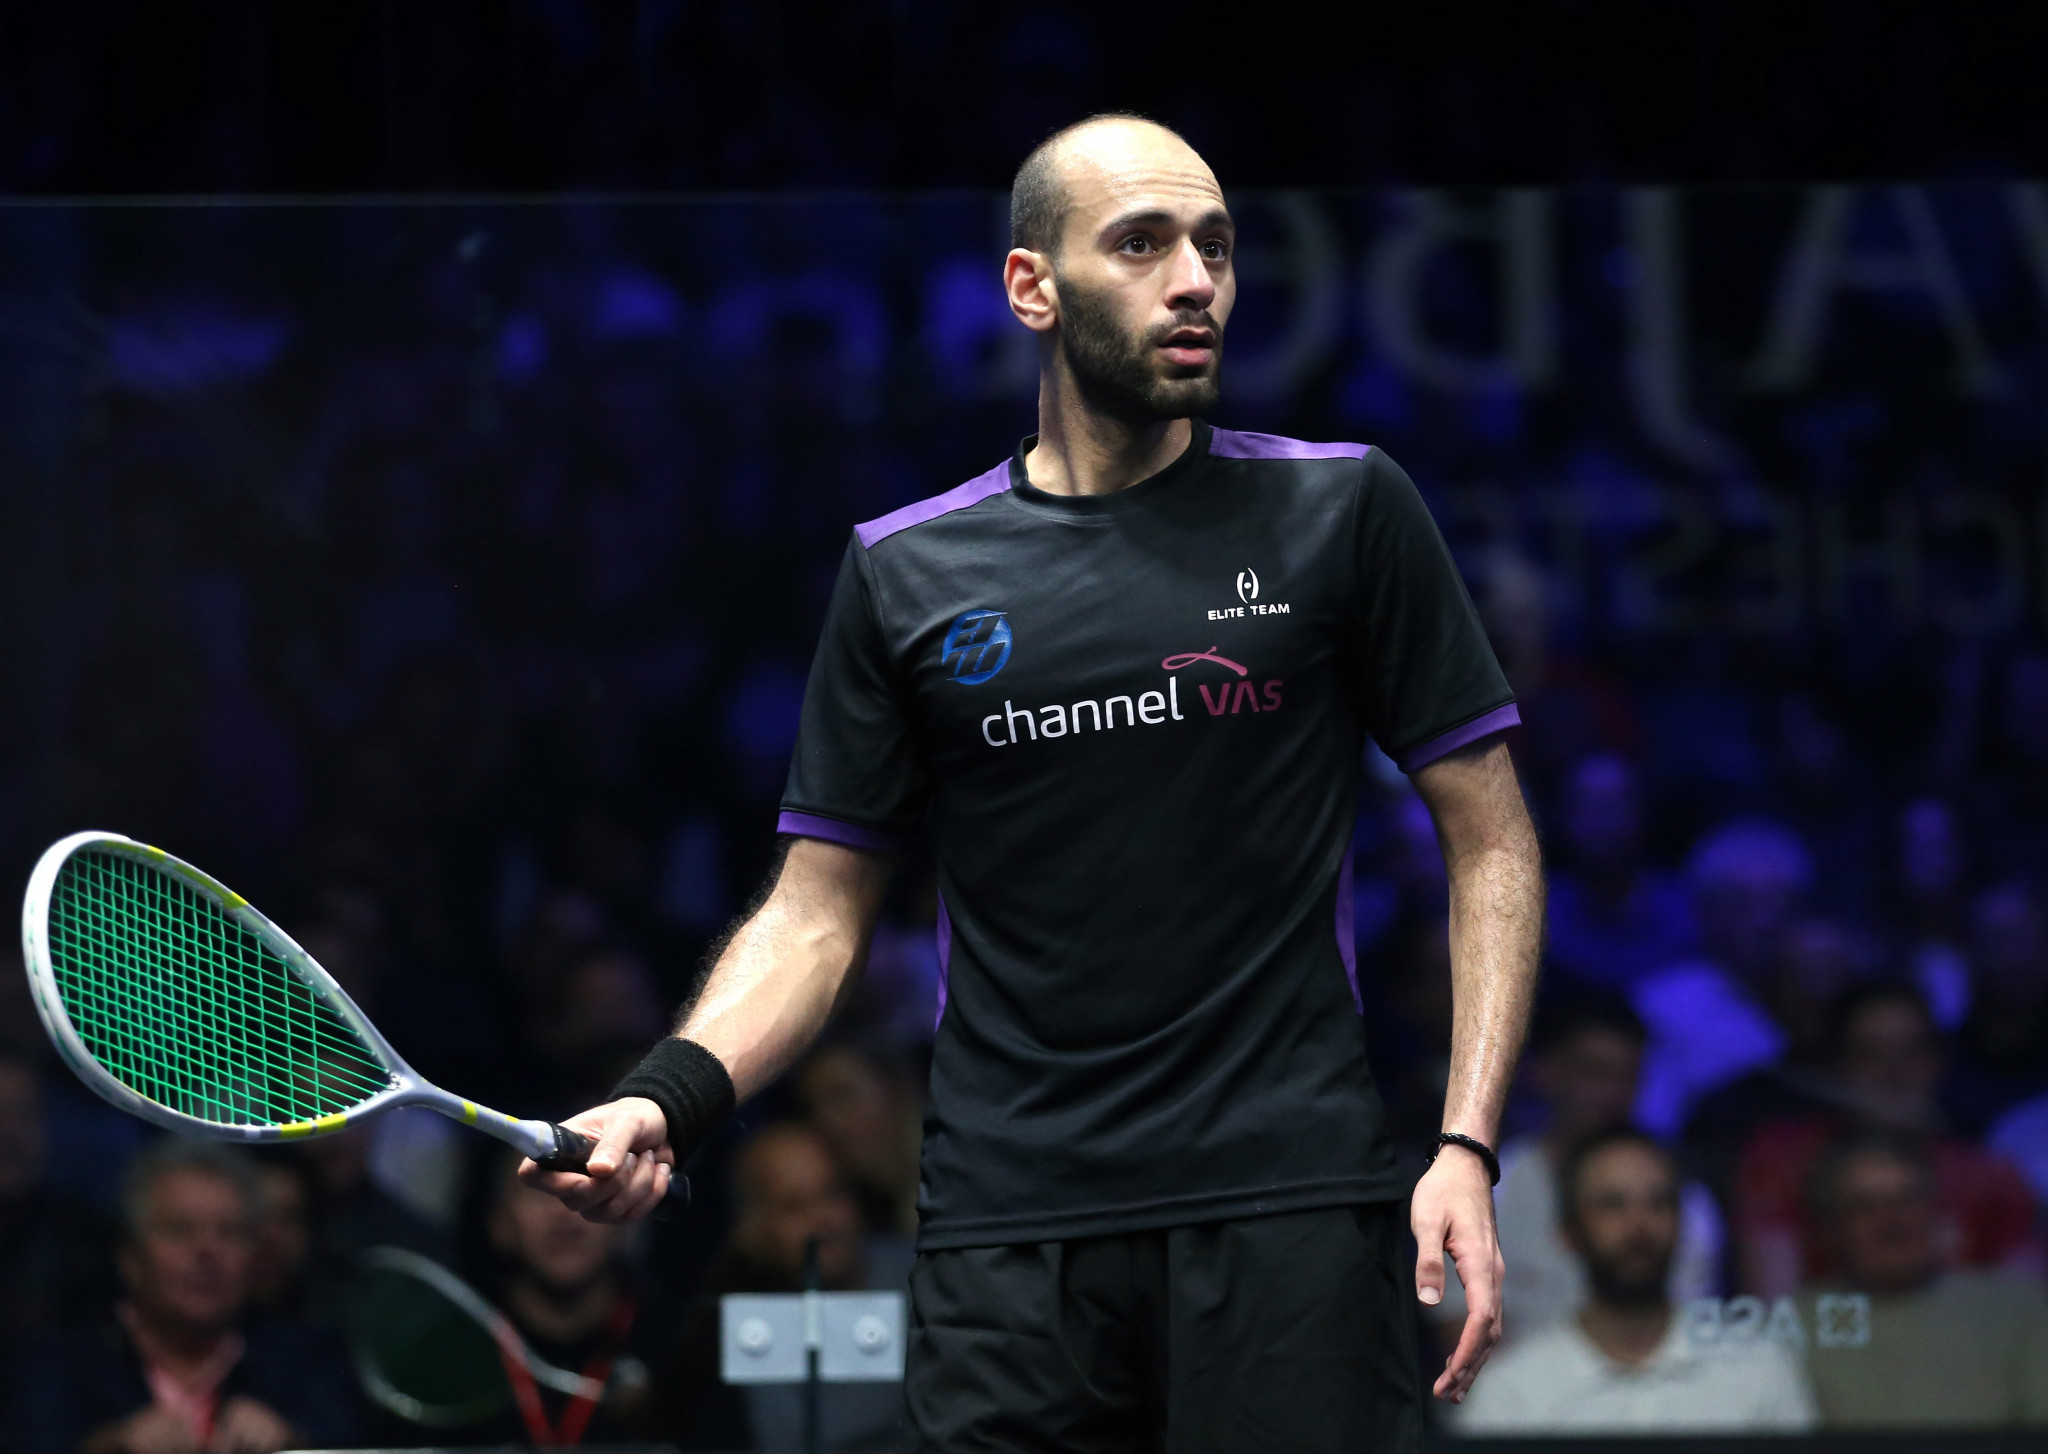 Egypt's Karim Abdel Gawad beat Hong Kong's Max Lee in the second round of the Grasshopper Cup in Zurich ©Getty Images